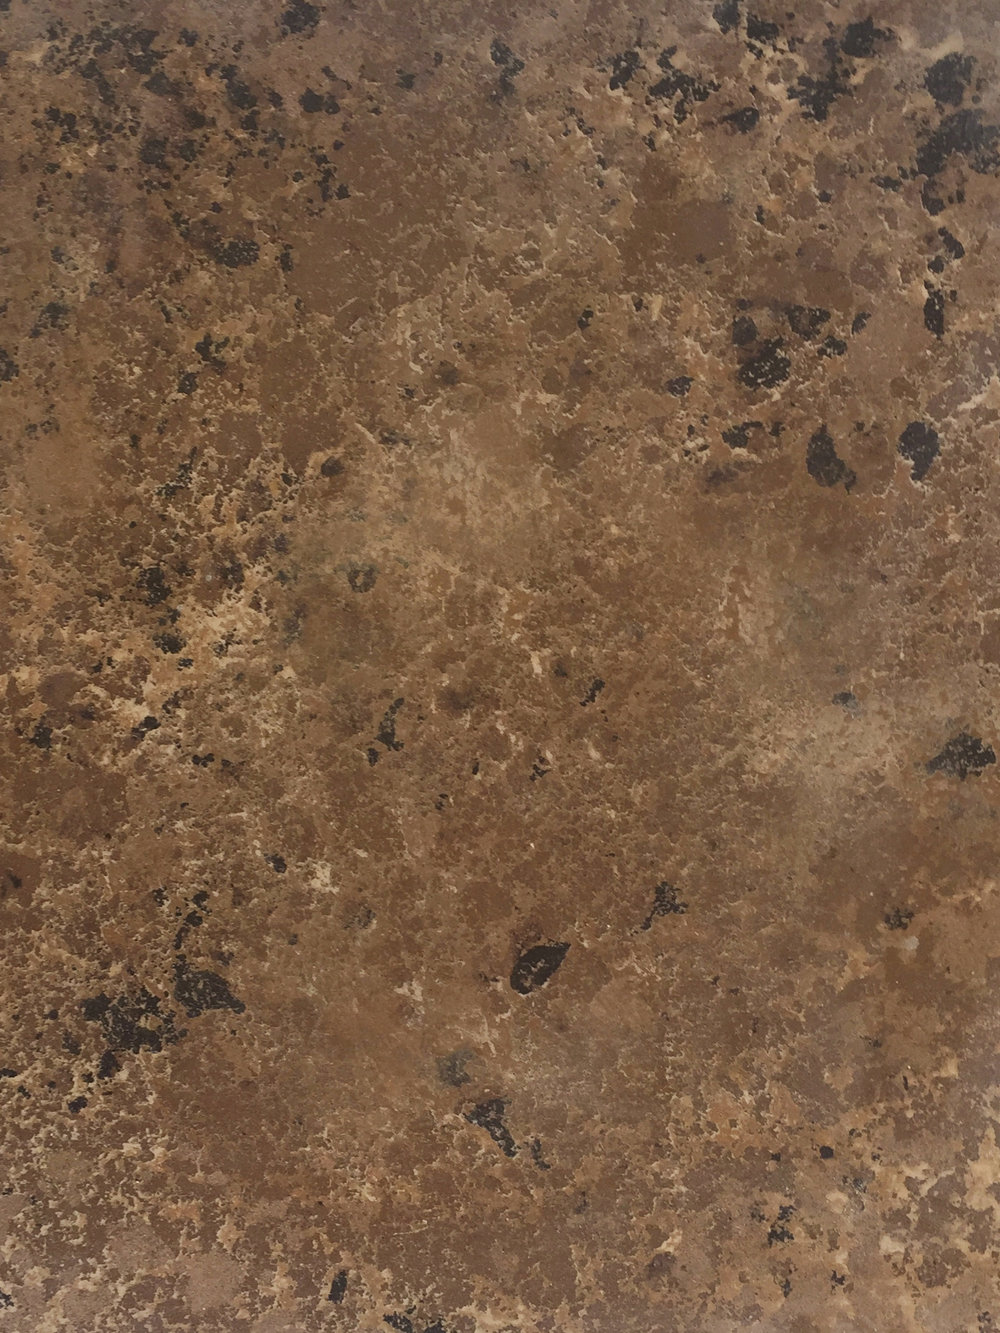 greyrockconcrete_greyrock_pressed_finish_threecolors_customconcretecolorado.jpg